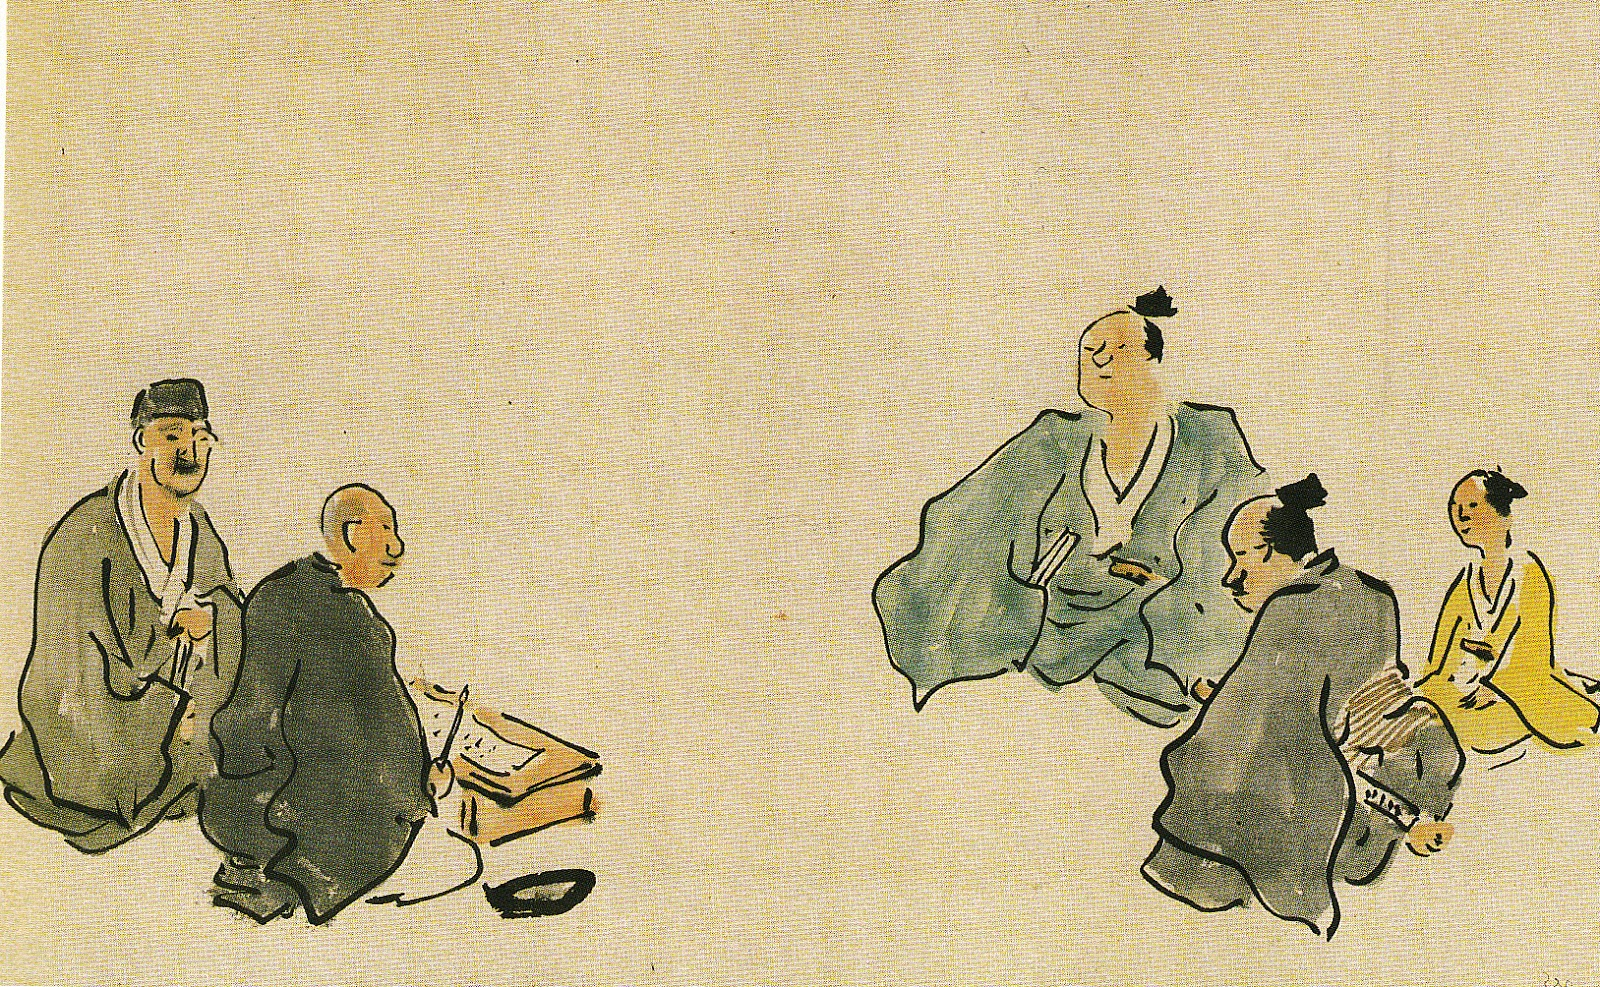 an approach to basho's haiku principle Define bashos bashos synonyms, bashos pronunciation, bashos translation, english dictionary definition of bashos matsuo 1644-1694 japanese poet known for his composition of haiku infused with the spirit of zen buddhism n , pl basho a grand tournament in sumo.